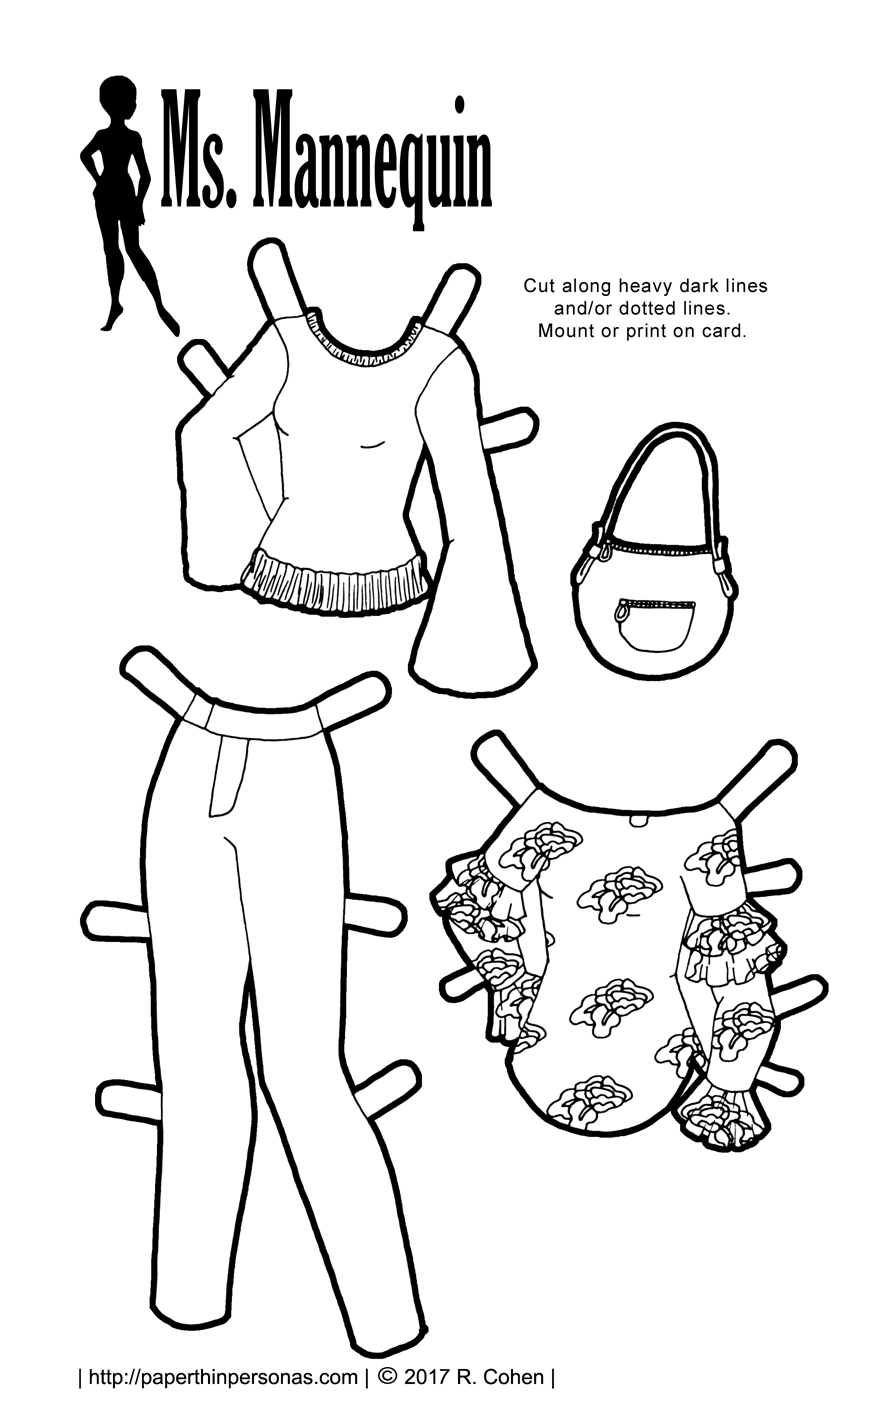 Some super trendy paper doll clothing coloring today! Sleeve details and floral prints for paper dolls. Free to print from paperthinpersonas.com.